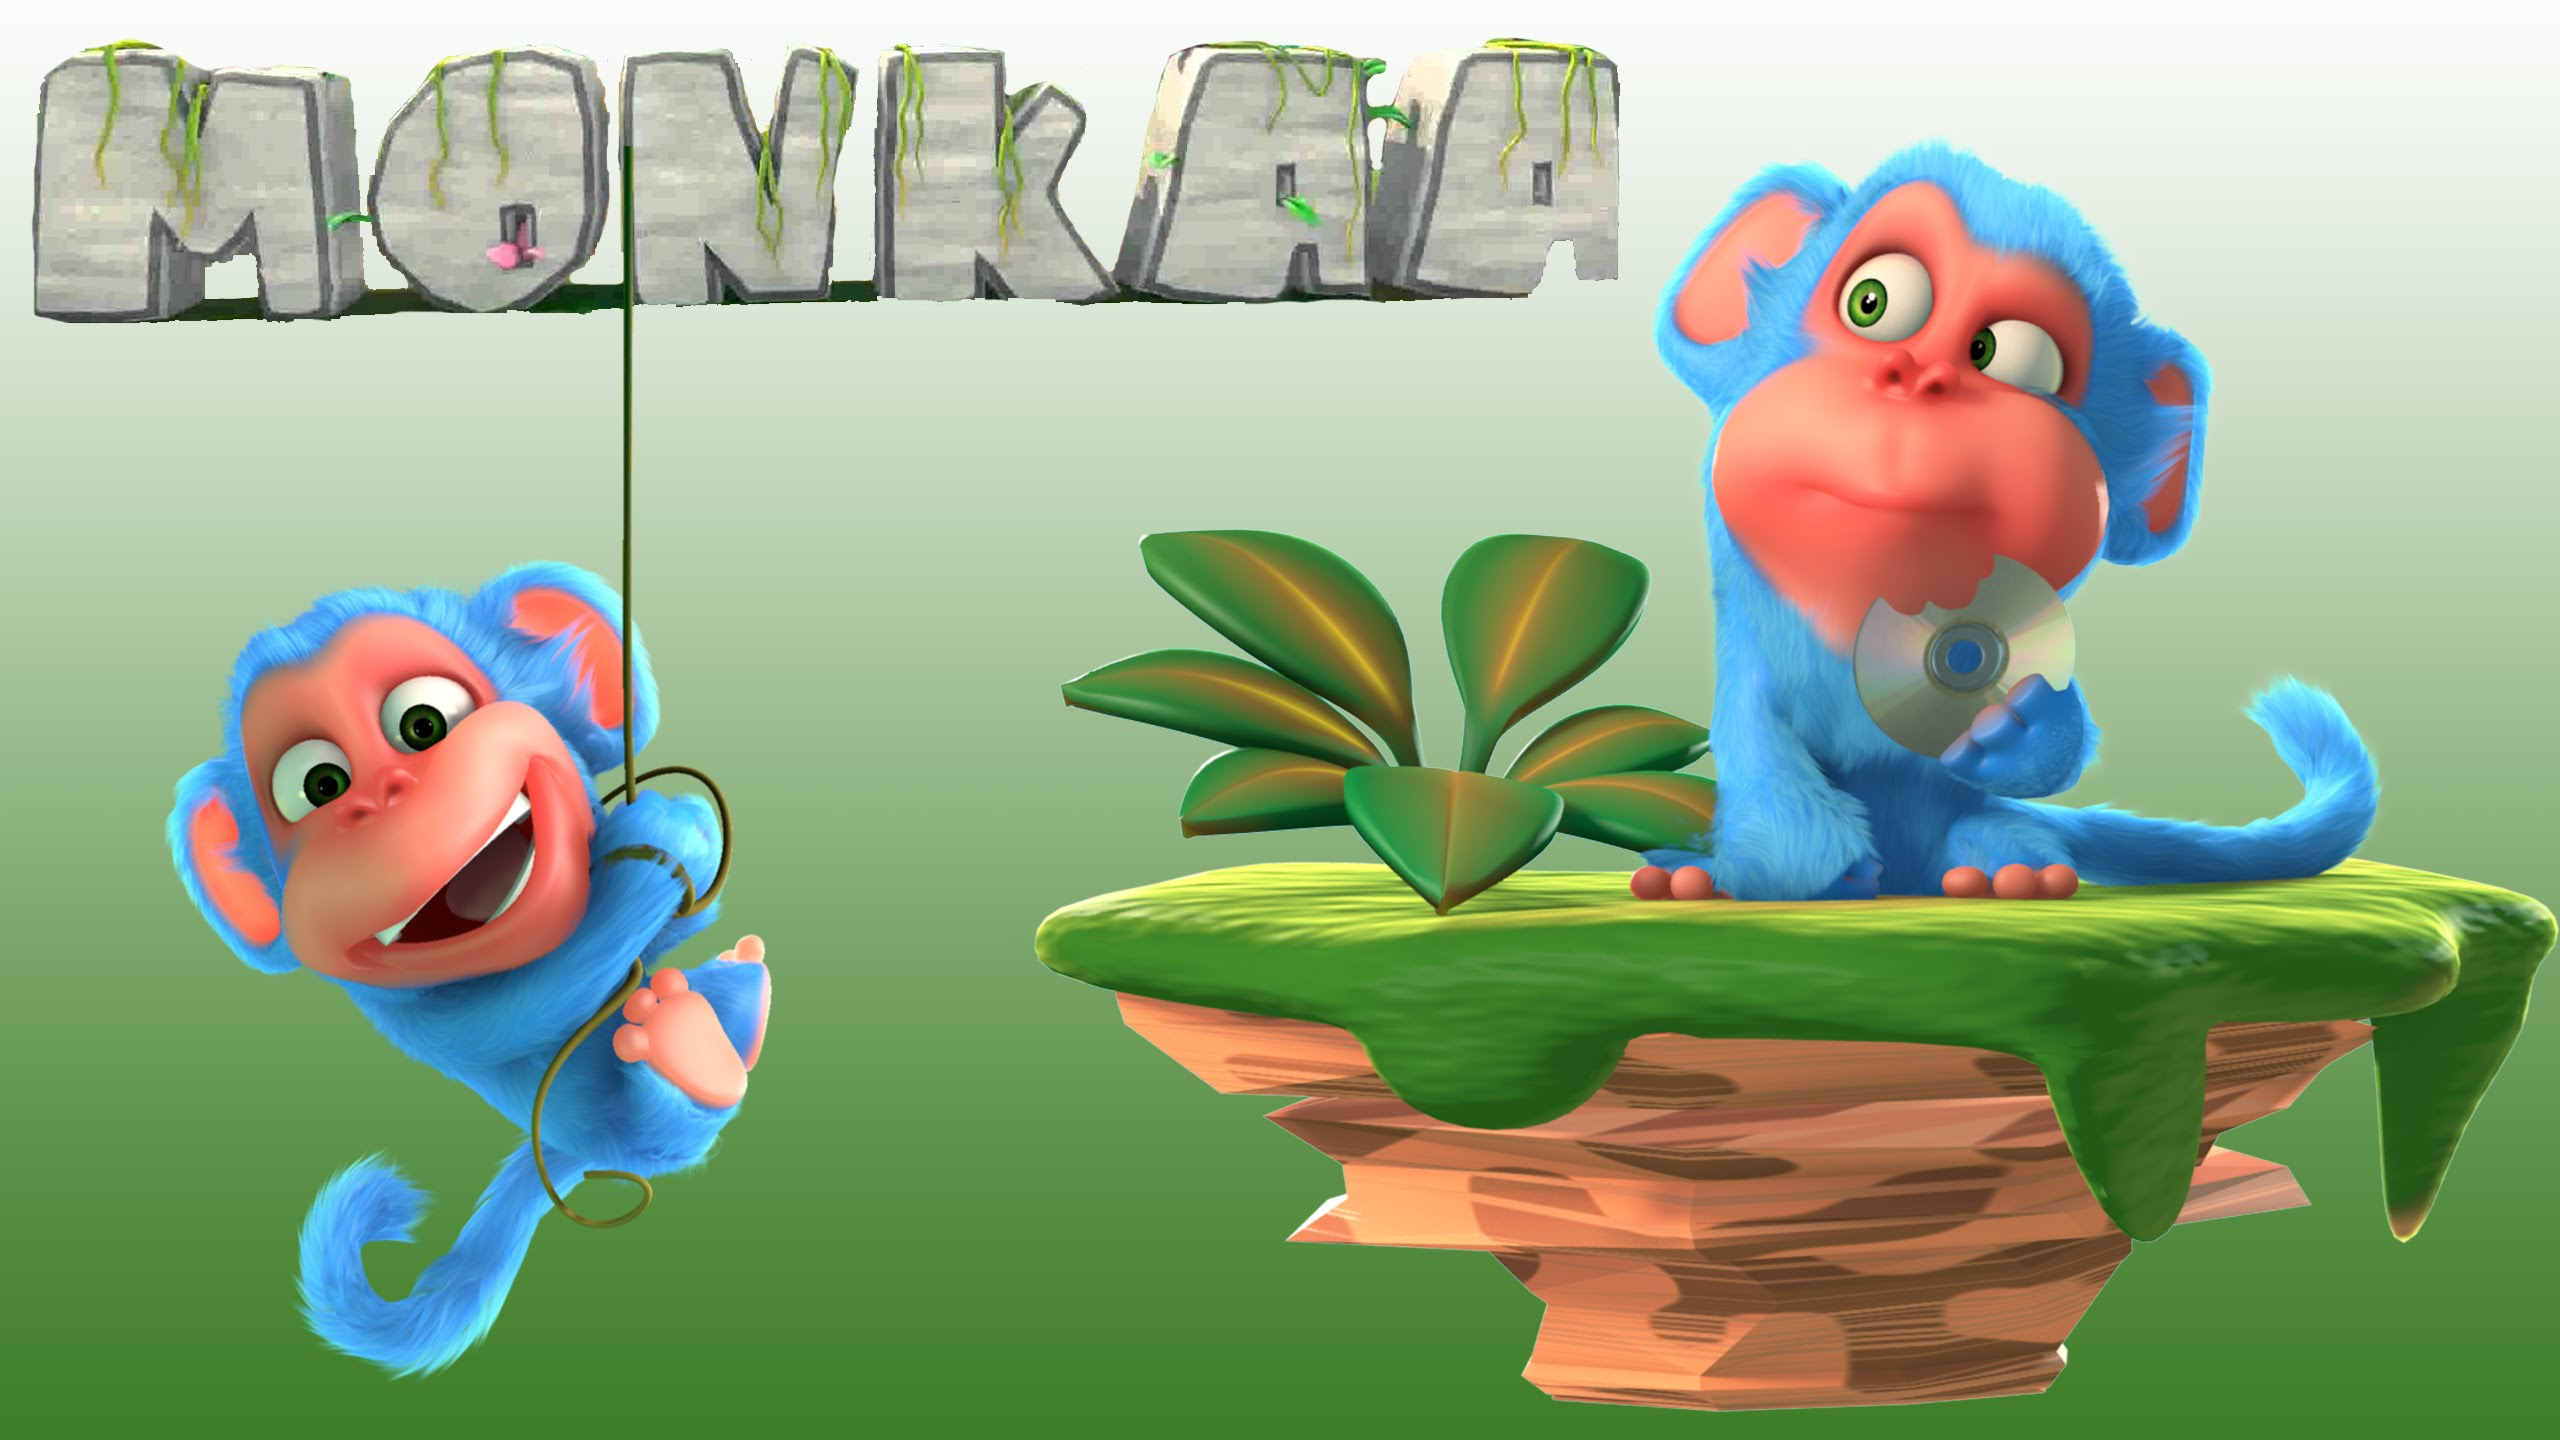 Short animation movie monkaa. Blender clipart animated